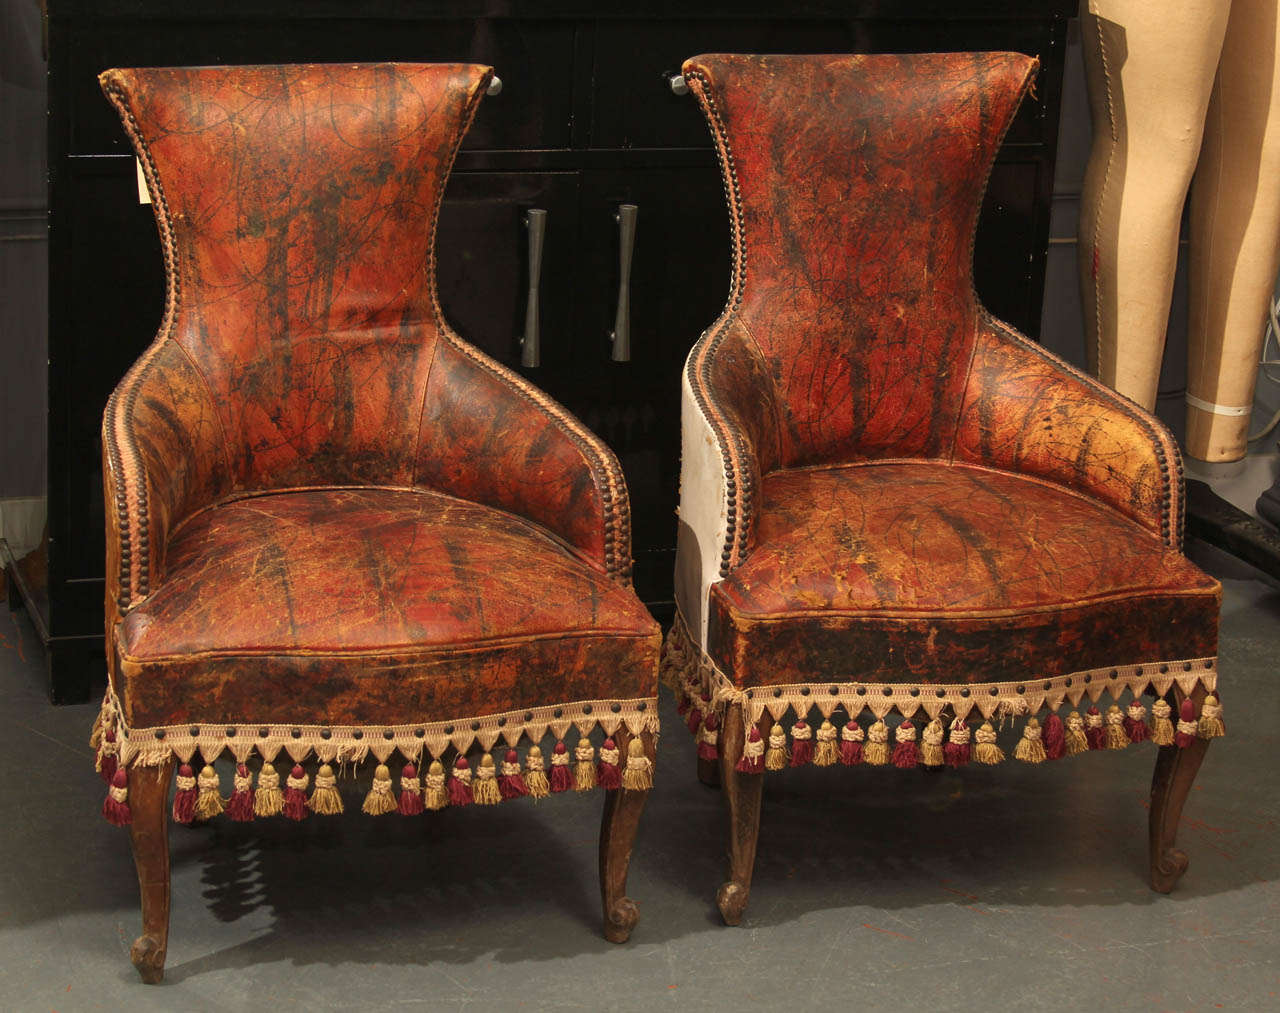 Unusual pair of curvy faux finished leather child size chairs trimmed in tassels and nailheads, as found.